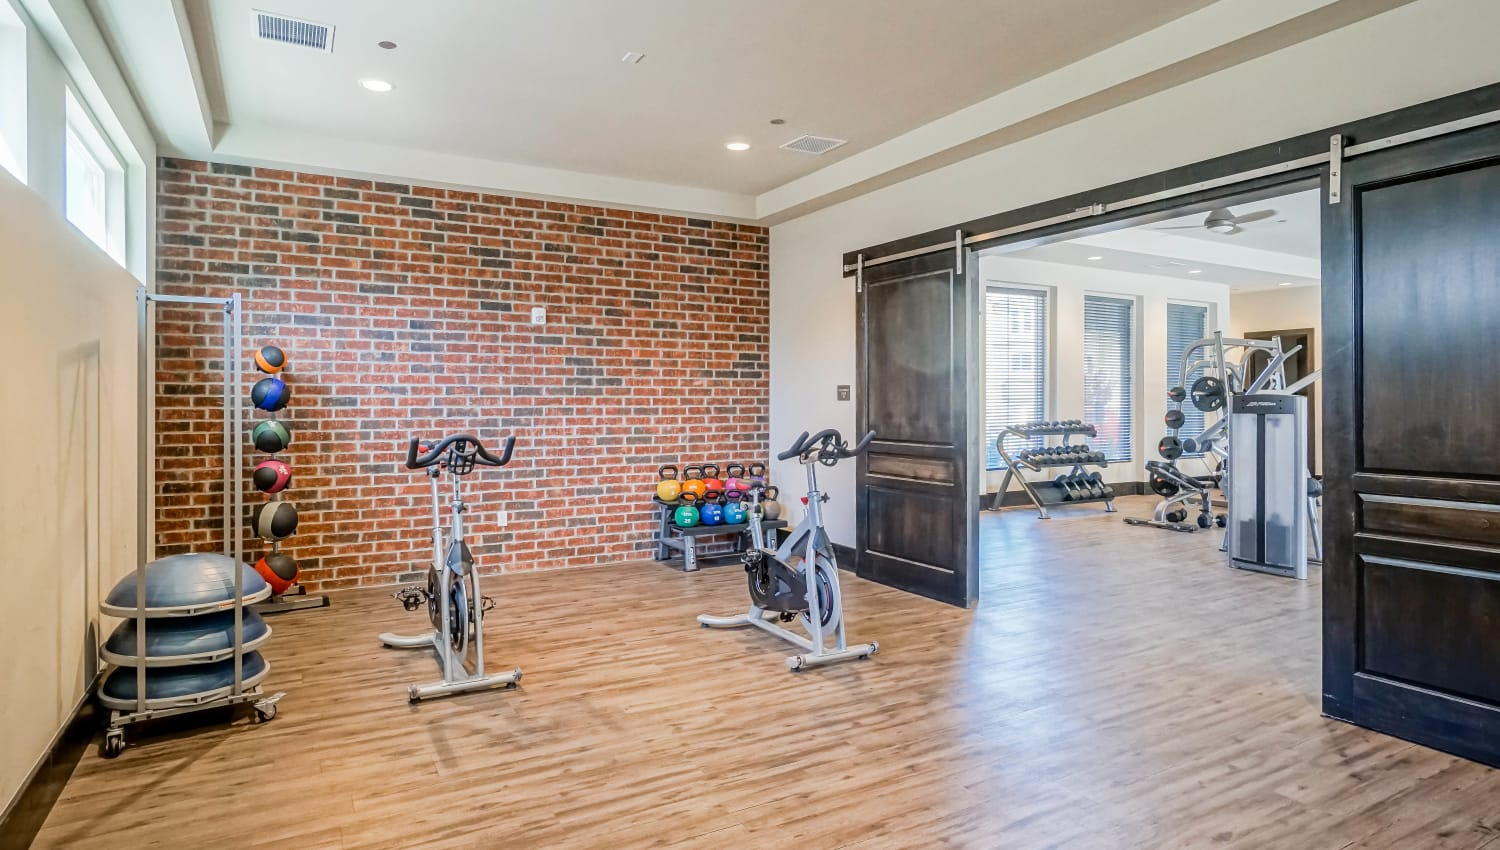 Spin class room at Olympus Northpoint in Albuquerque, New Mexico